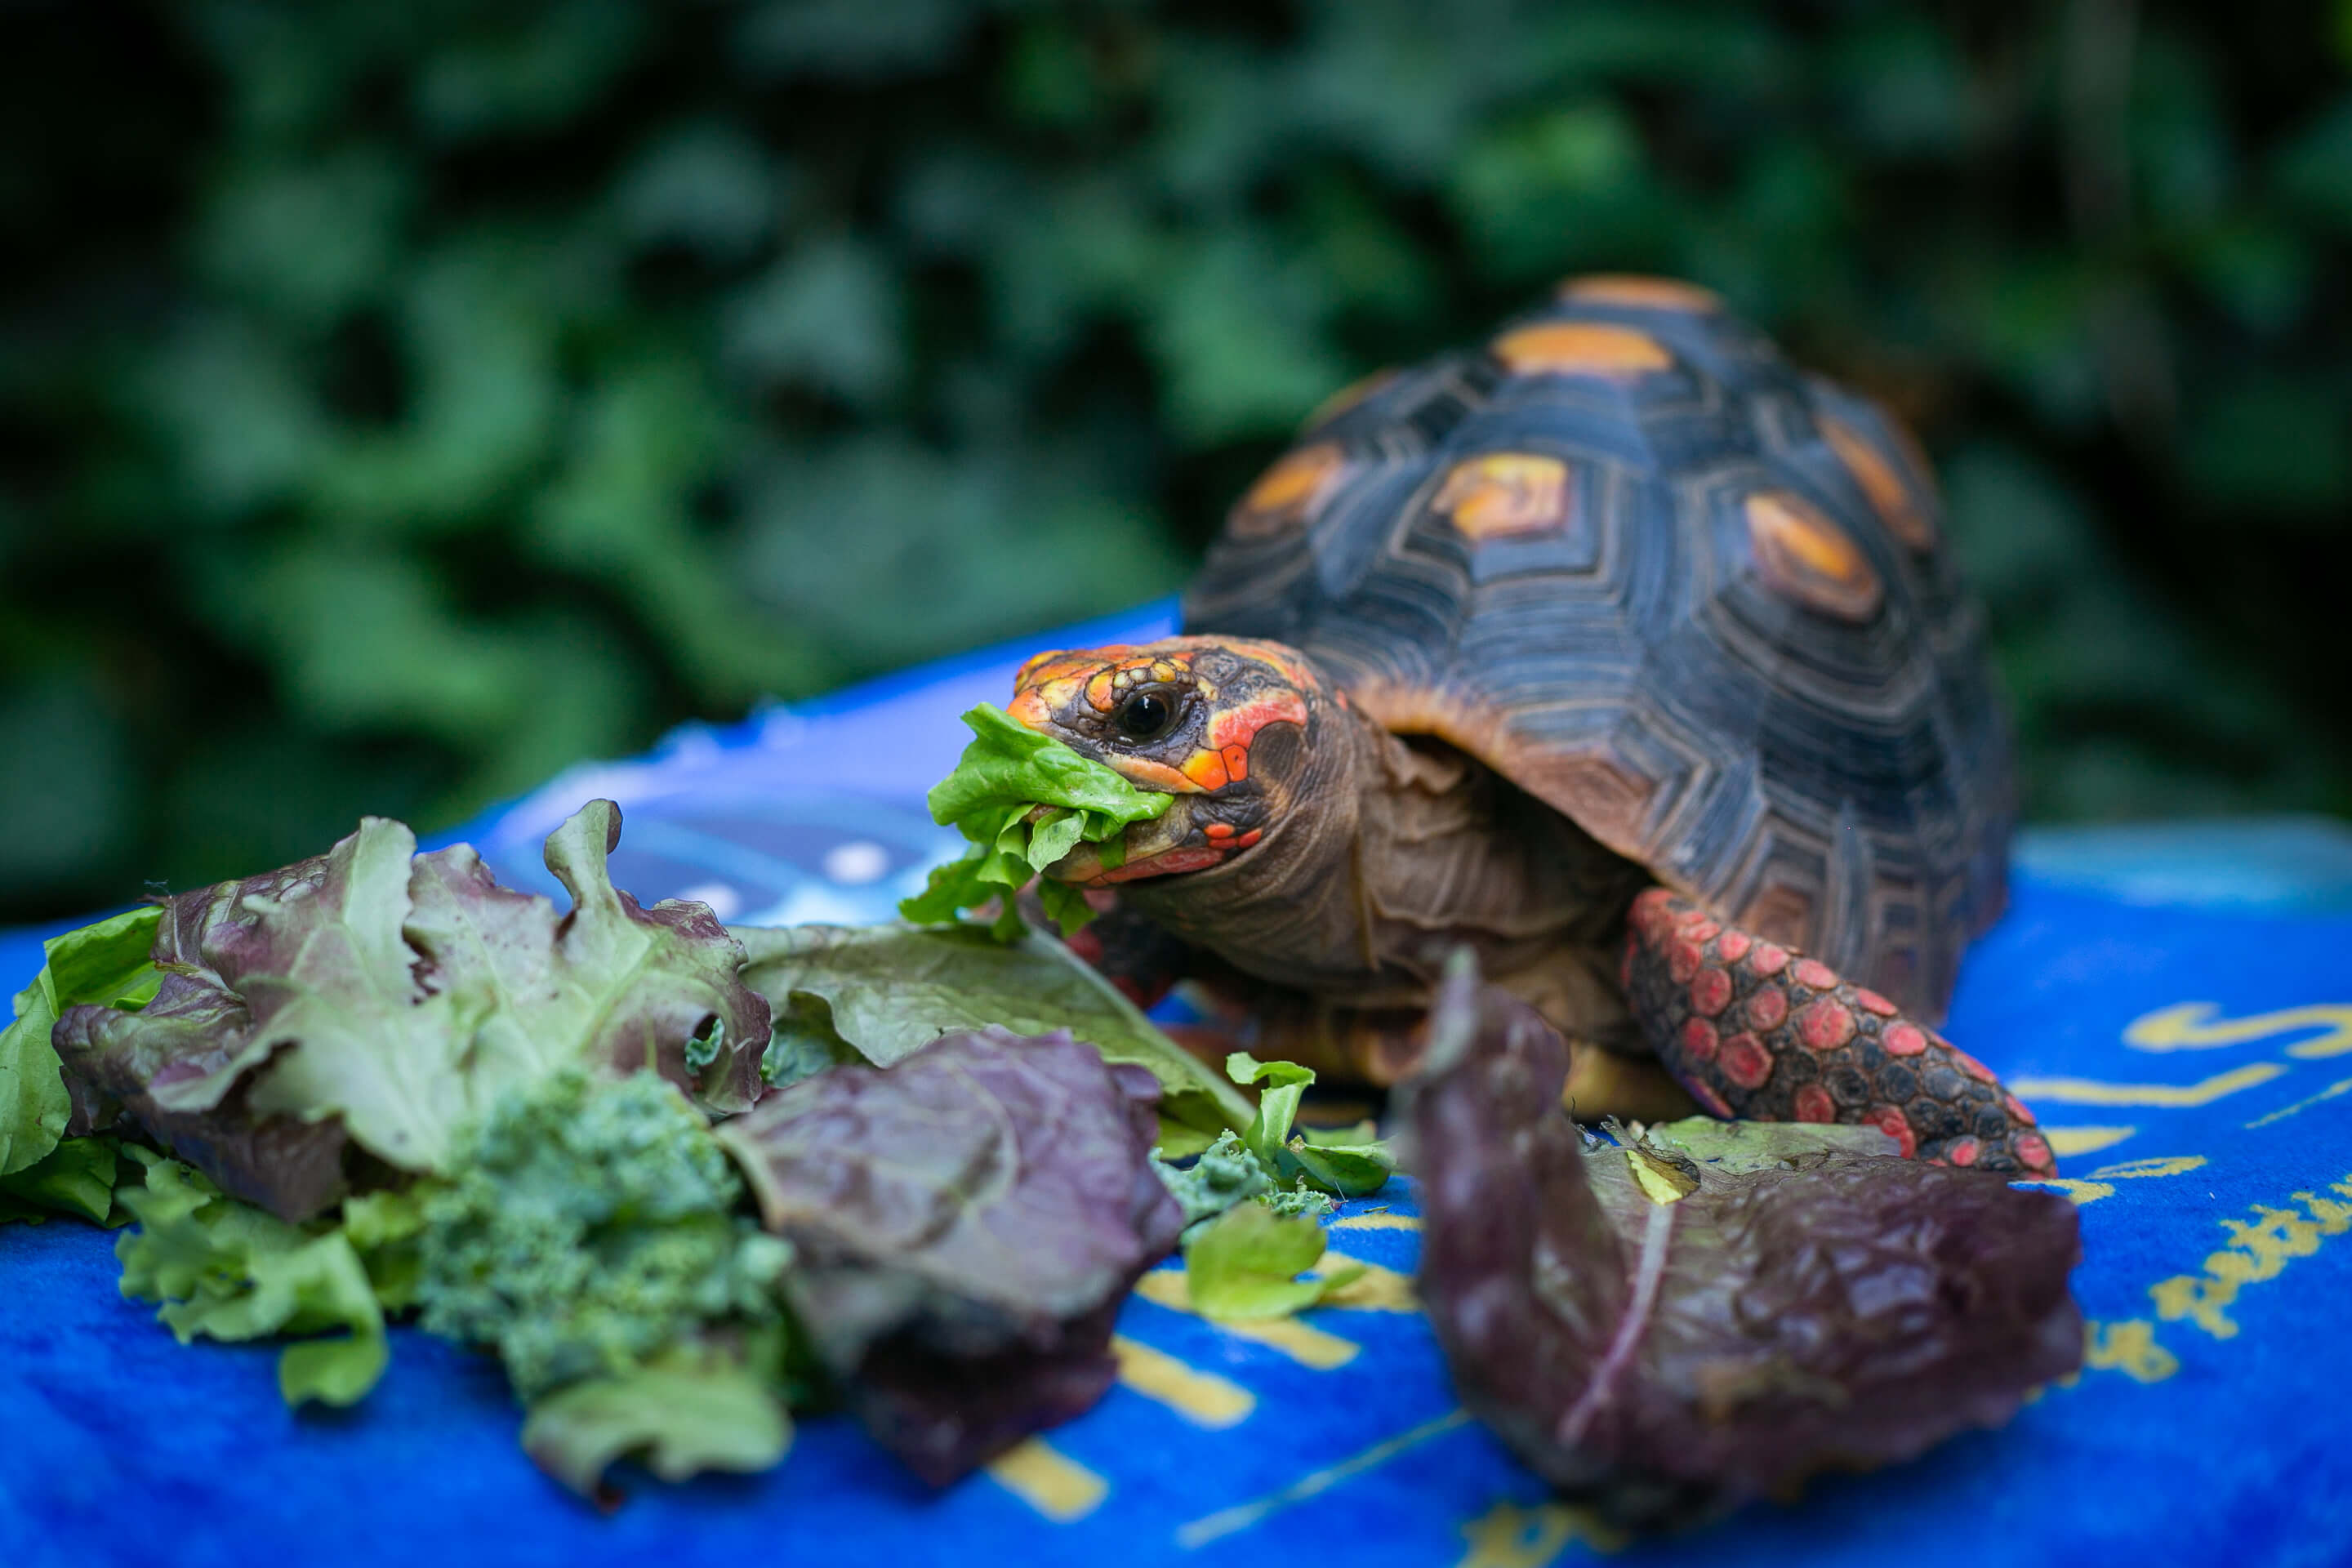 A tortoise eating lettuce.